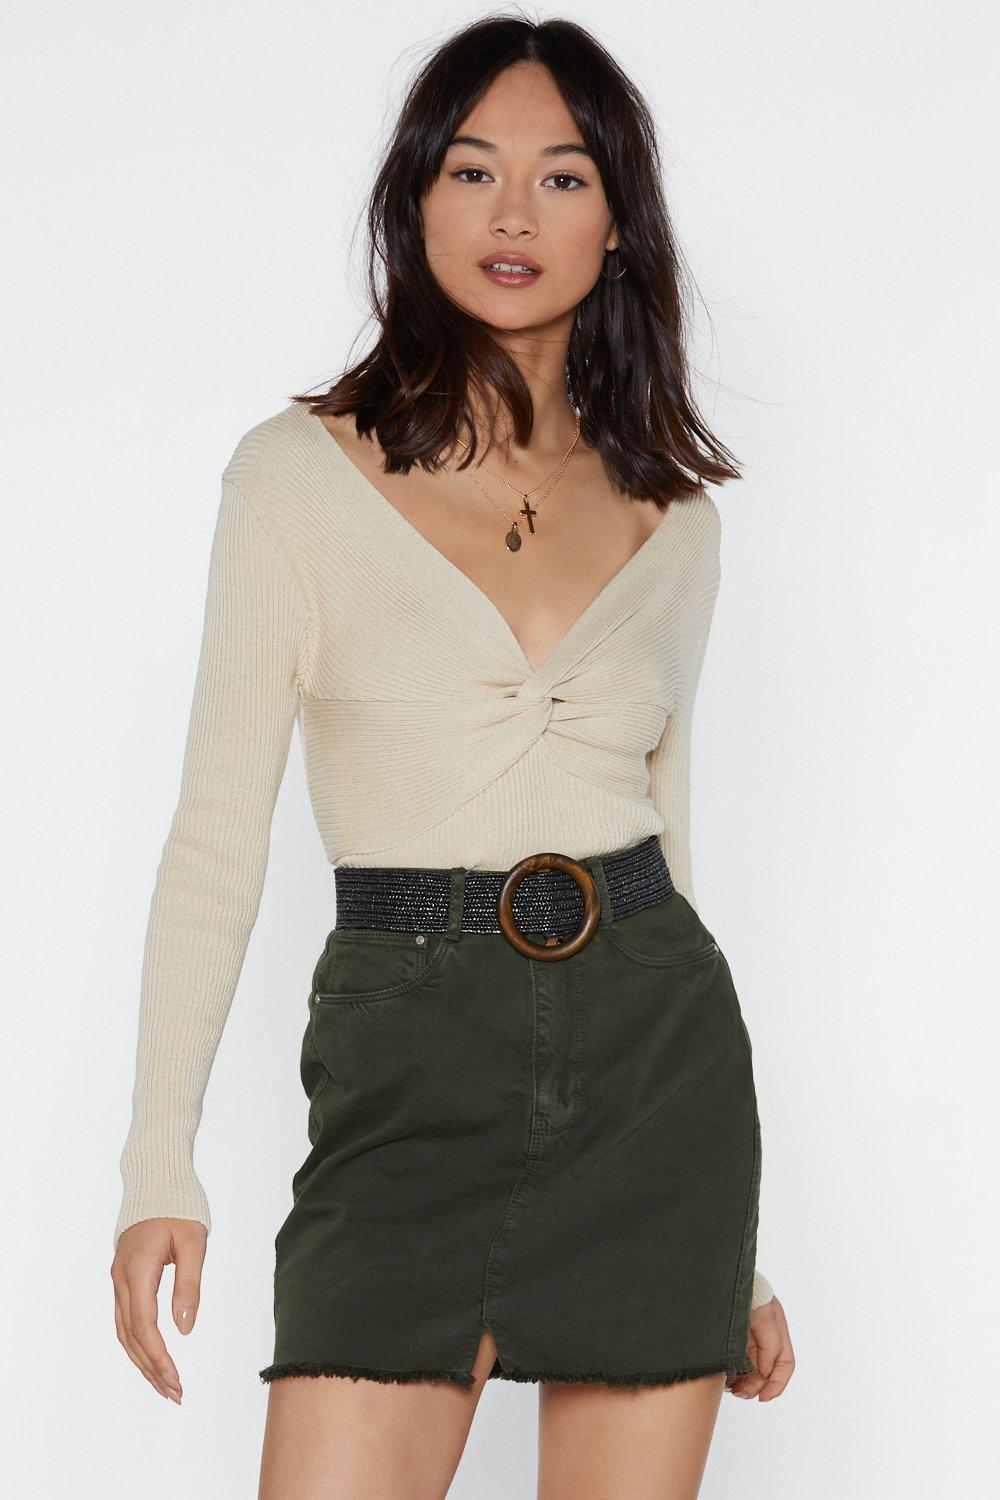 Twist It Now Baby Knit Top | Shop Clothes at Nasty Gal!